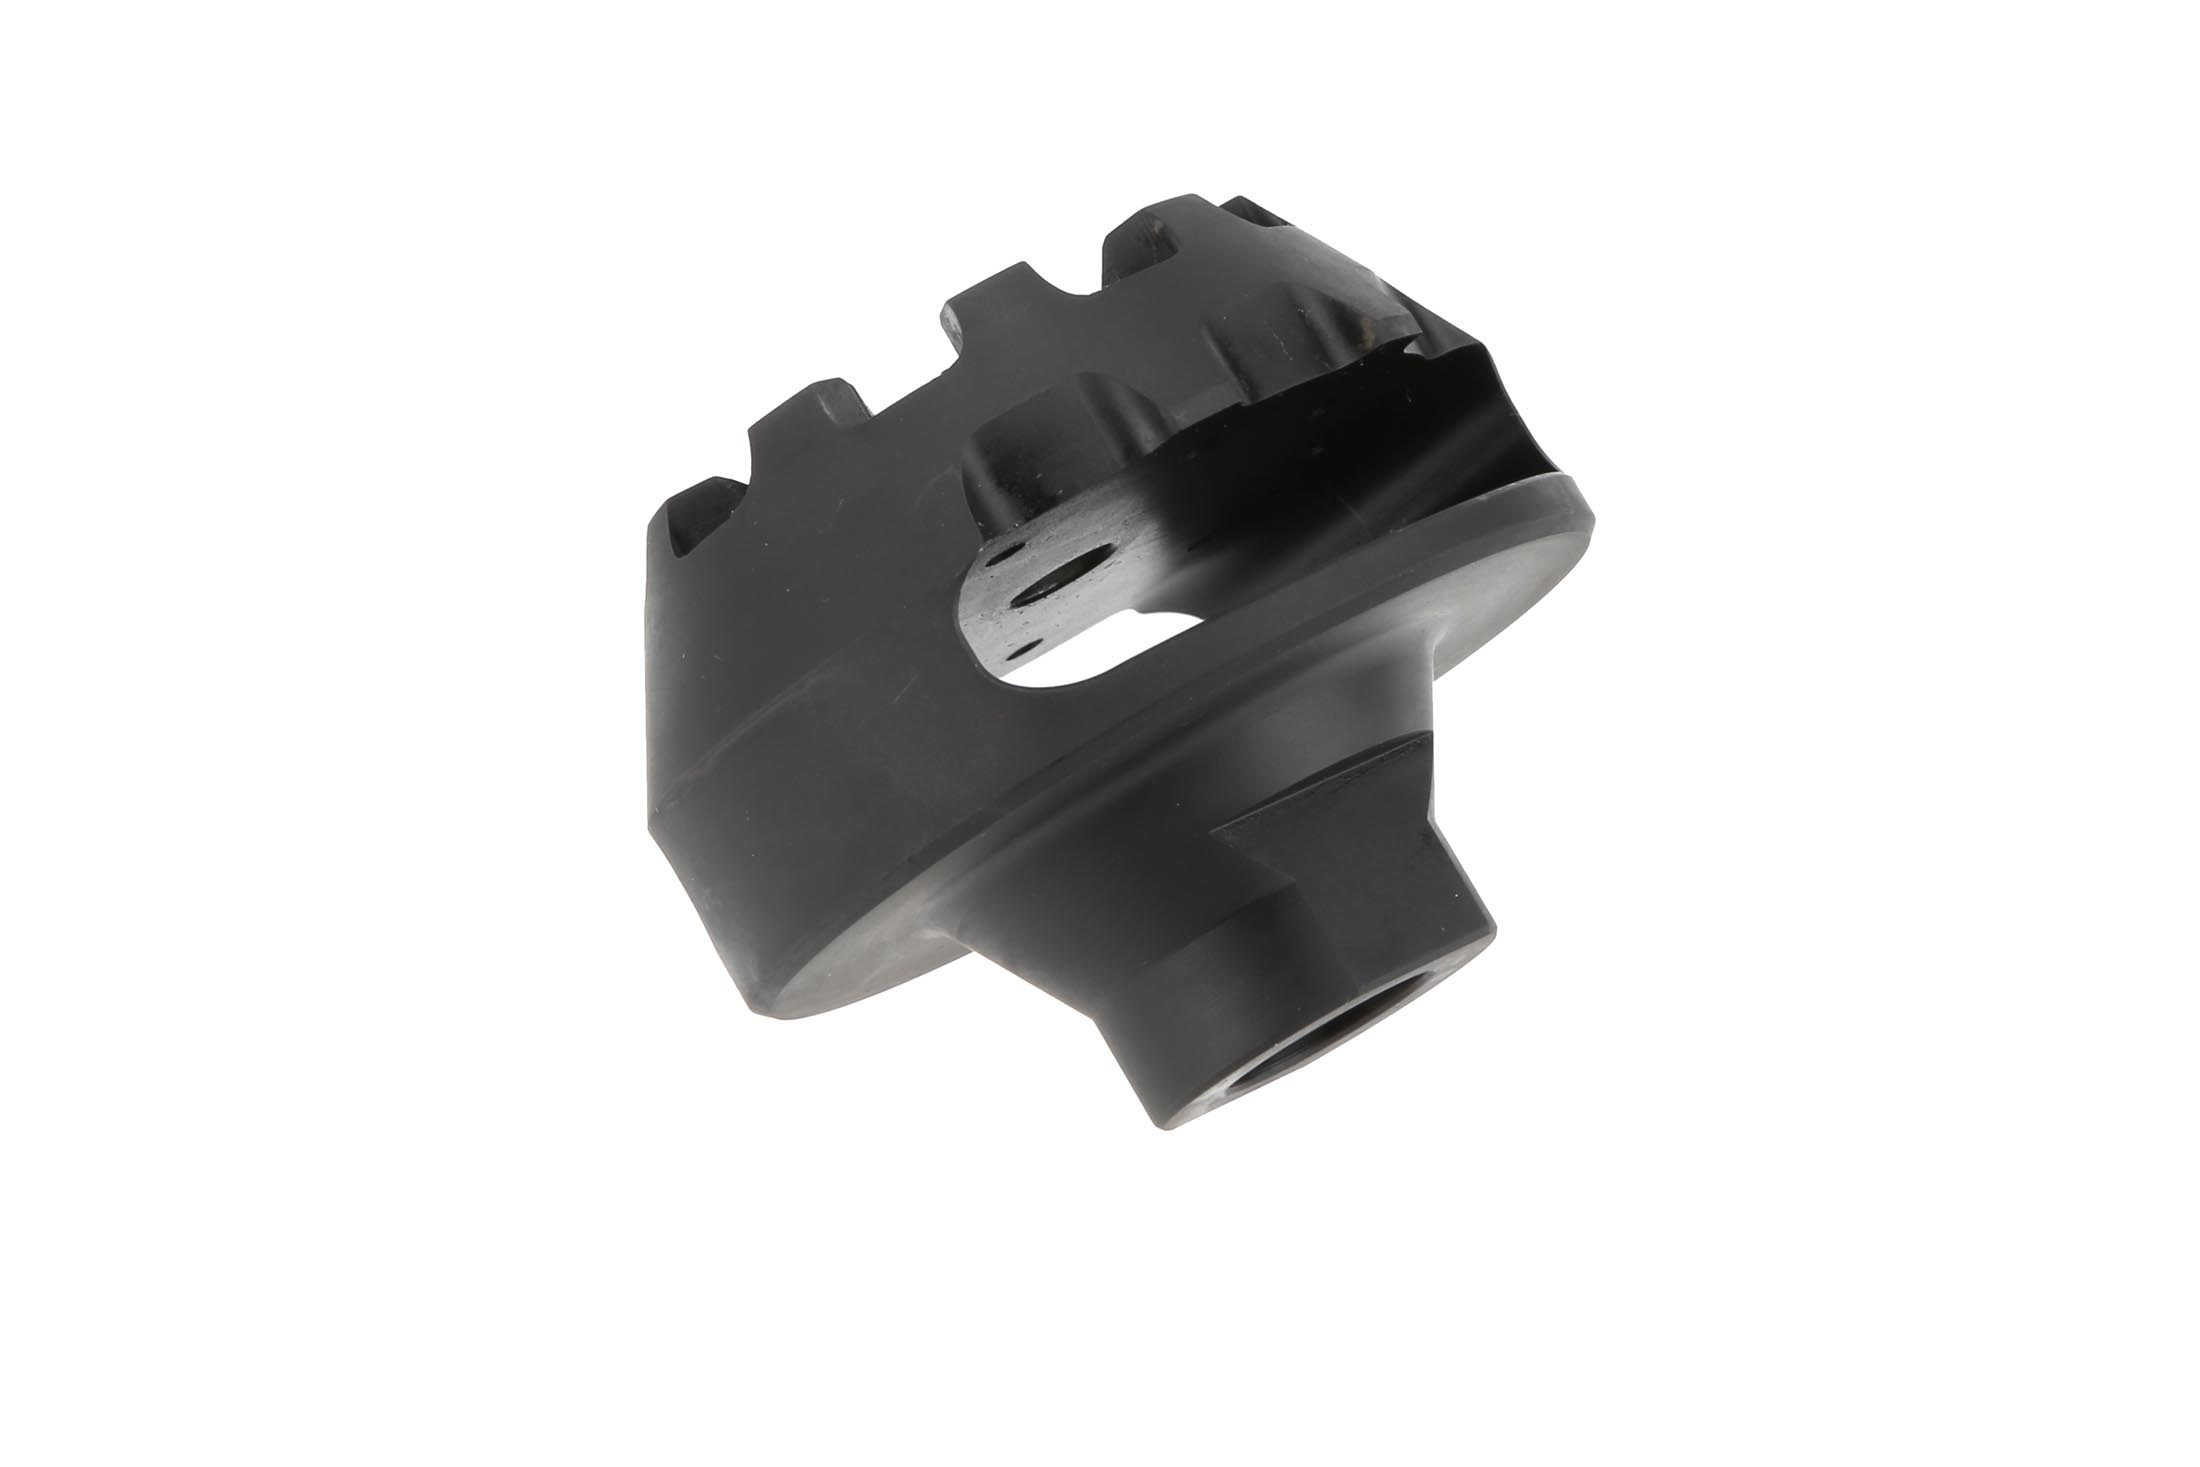 Strike Industries Cookie Cutter Comp - 1/2x28